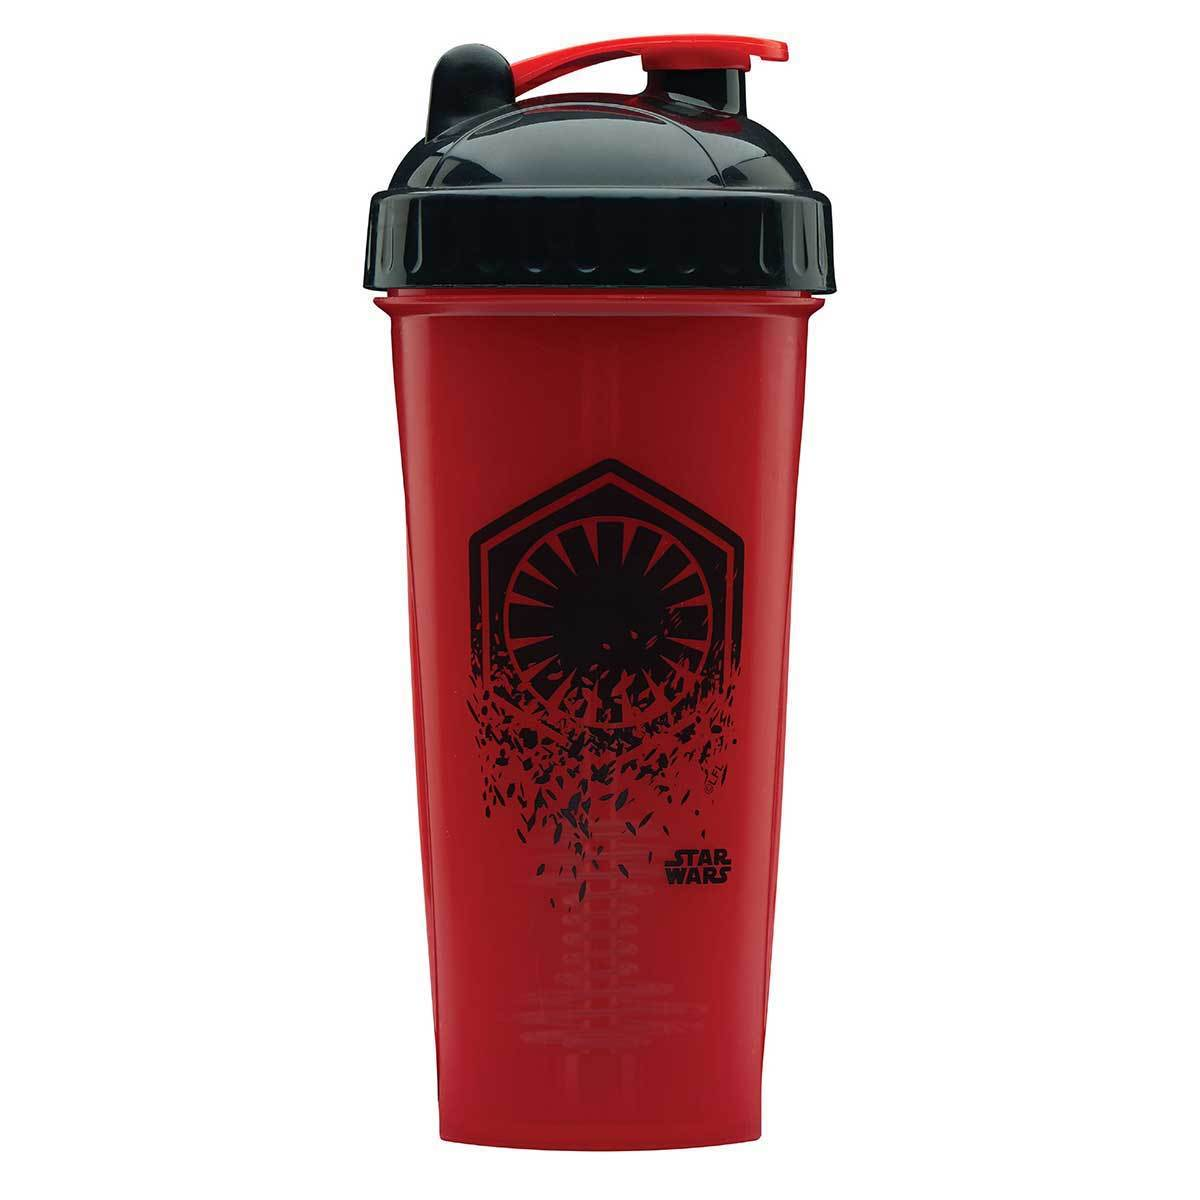 Star Wars First Order Shaker Bottle 28oz Fitness Accessories and Apparel PerfectShaker  (1059338879019)